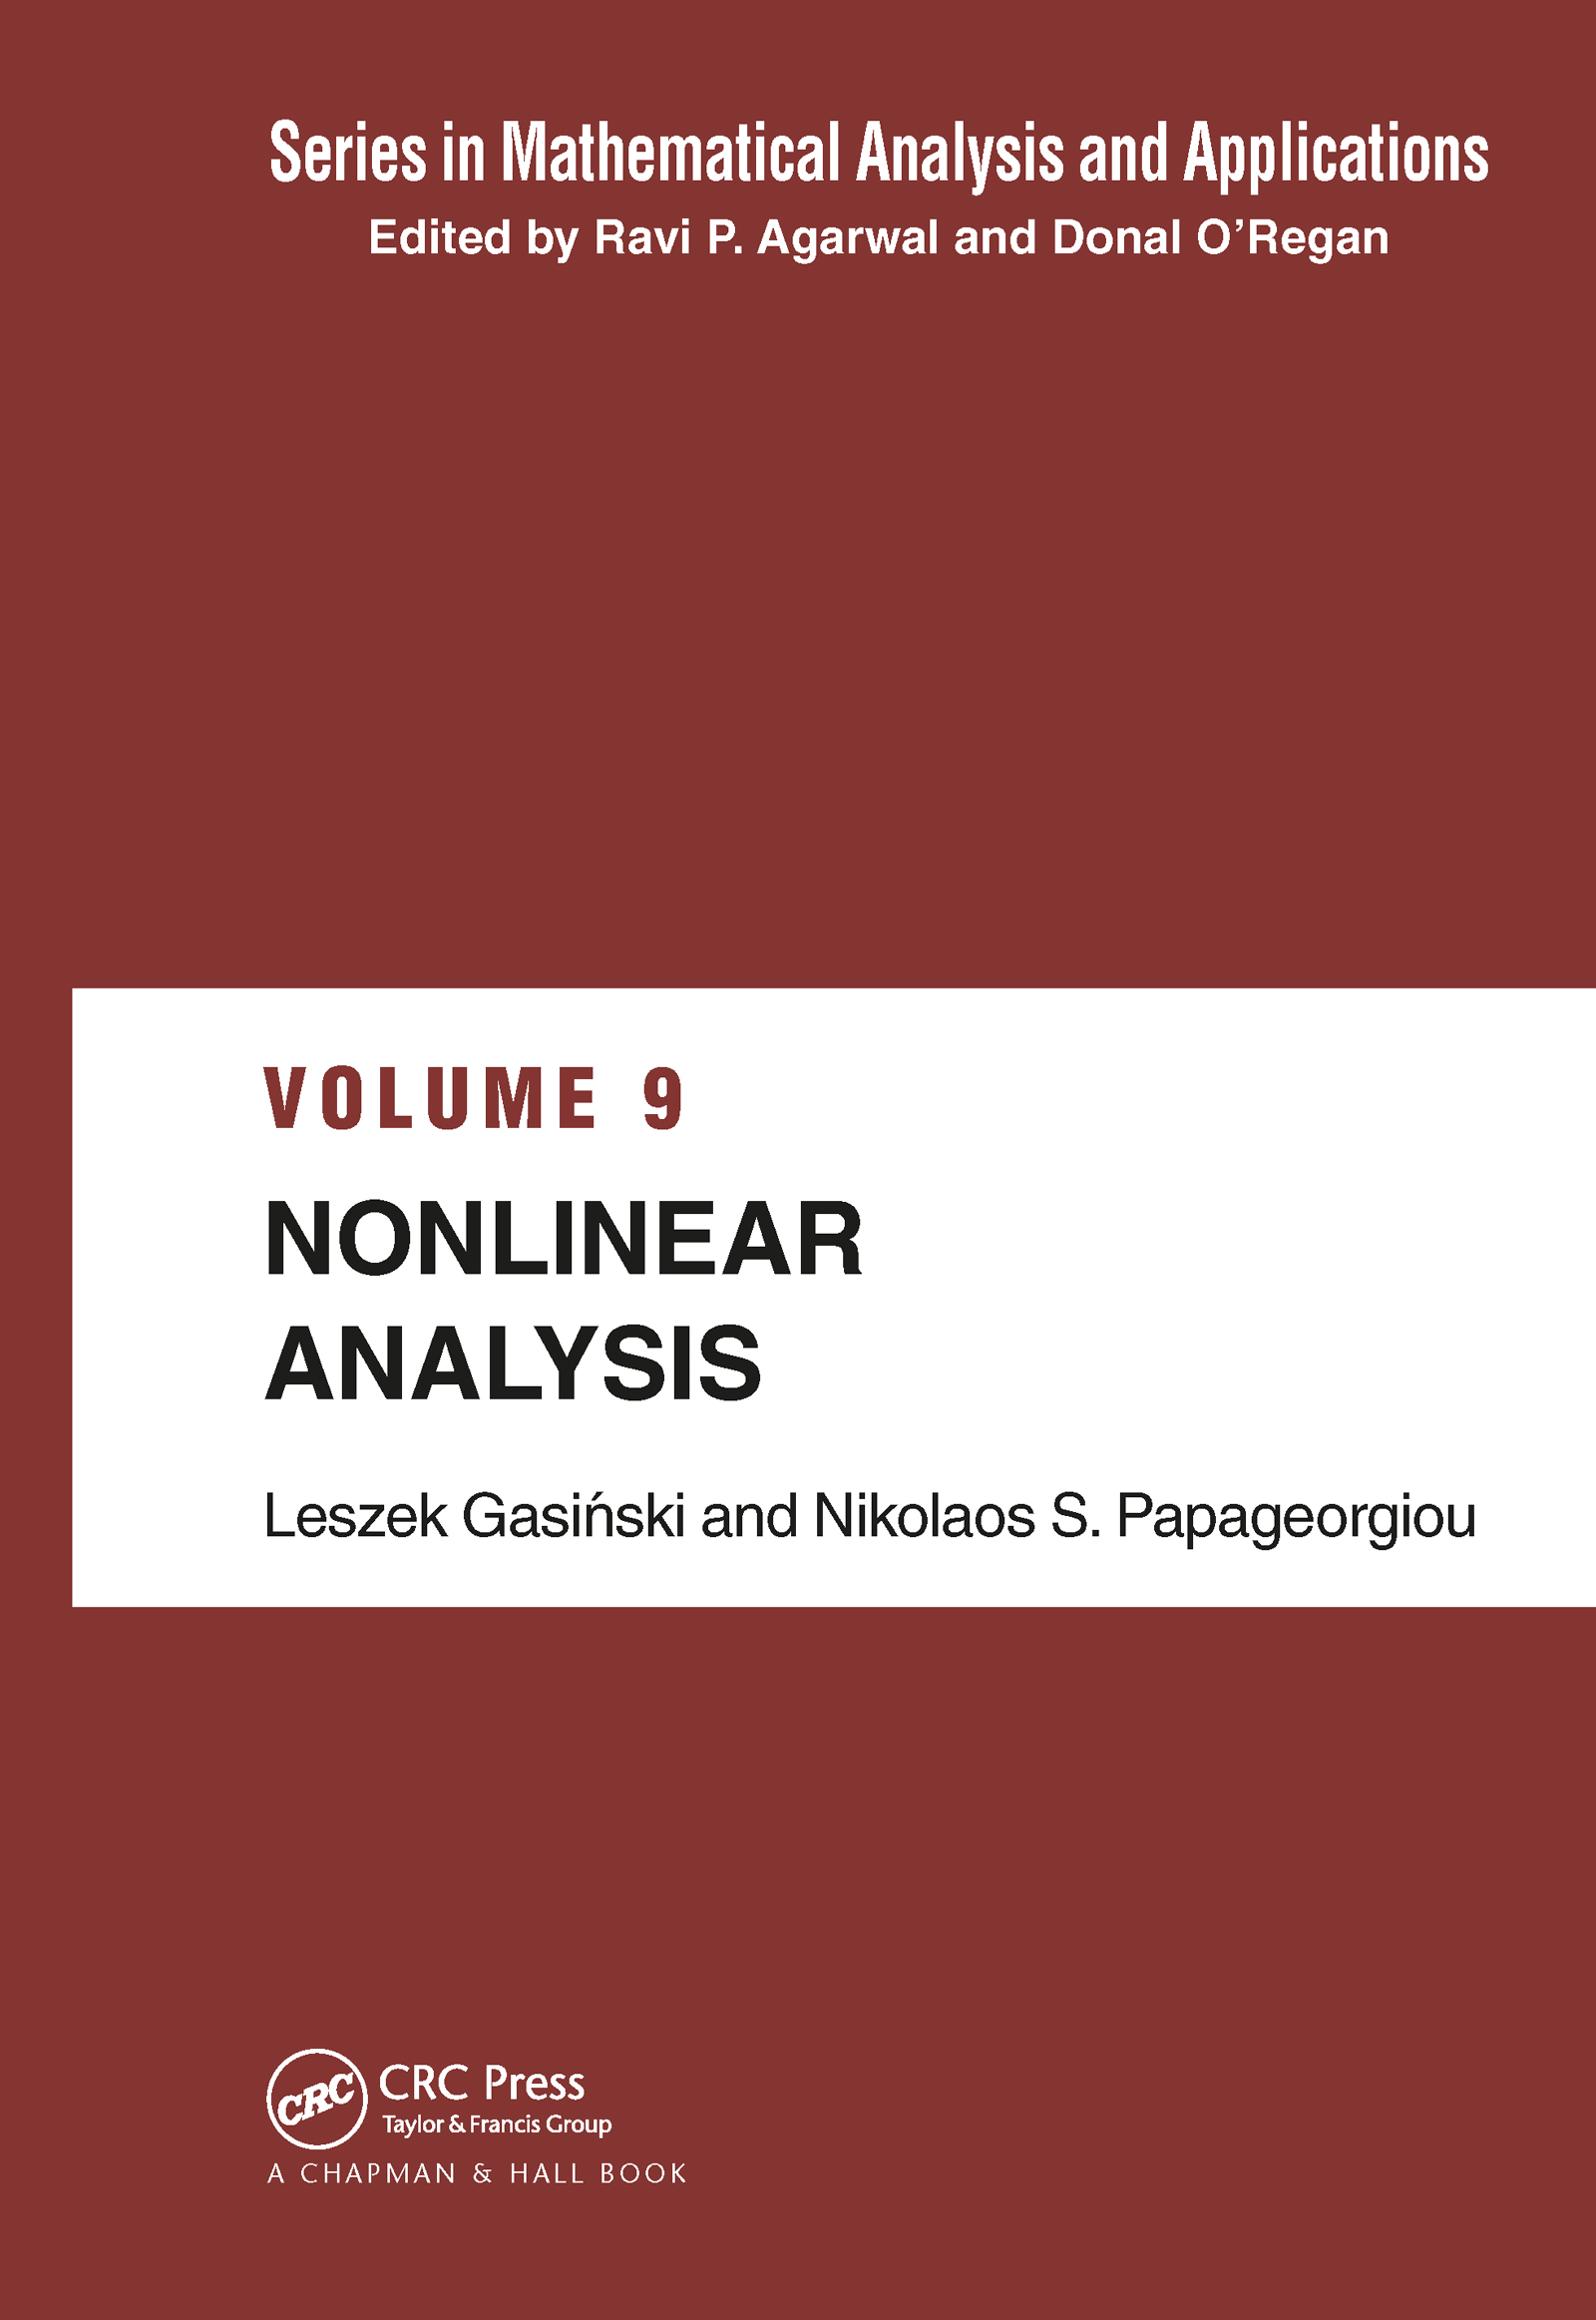 Mathematical Analysis and Applications - Routledge